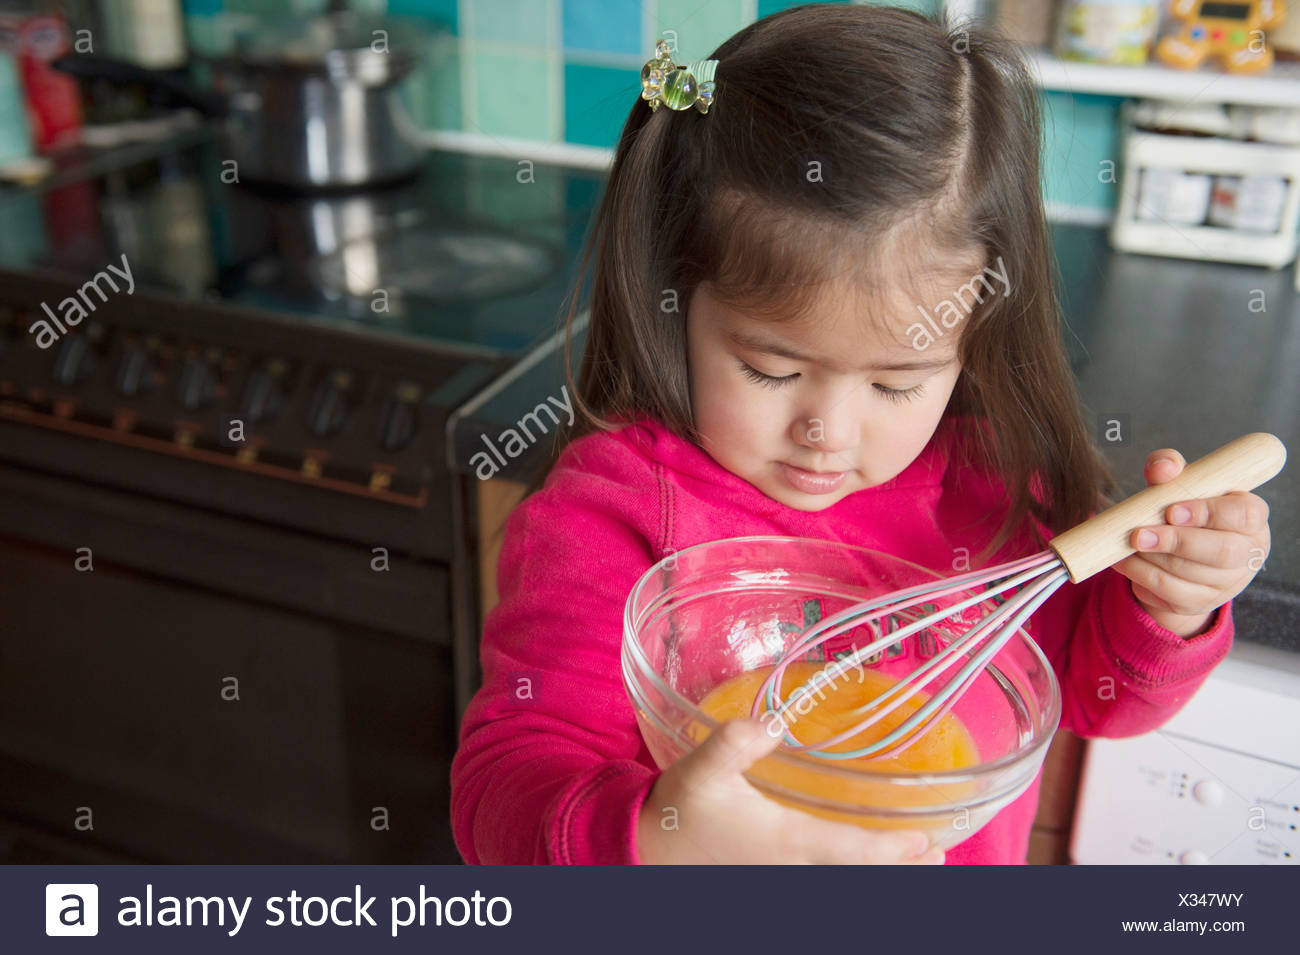 Girl learning to cook Photo Stock